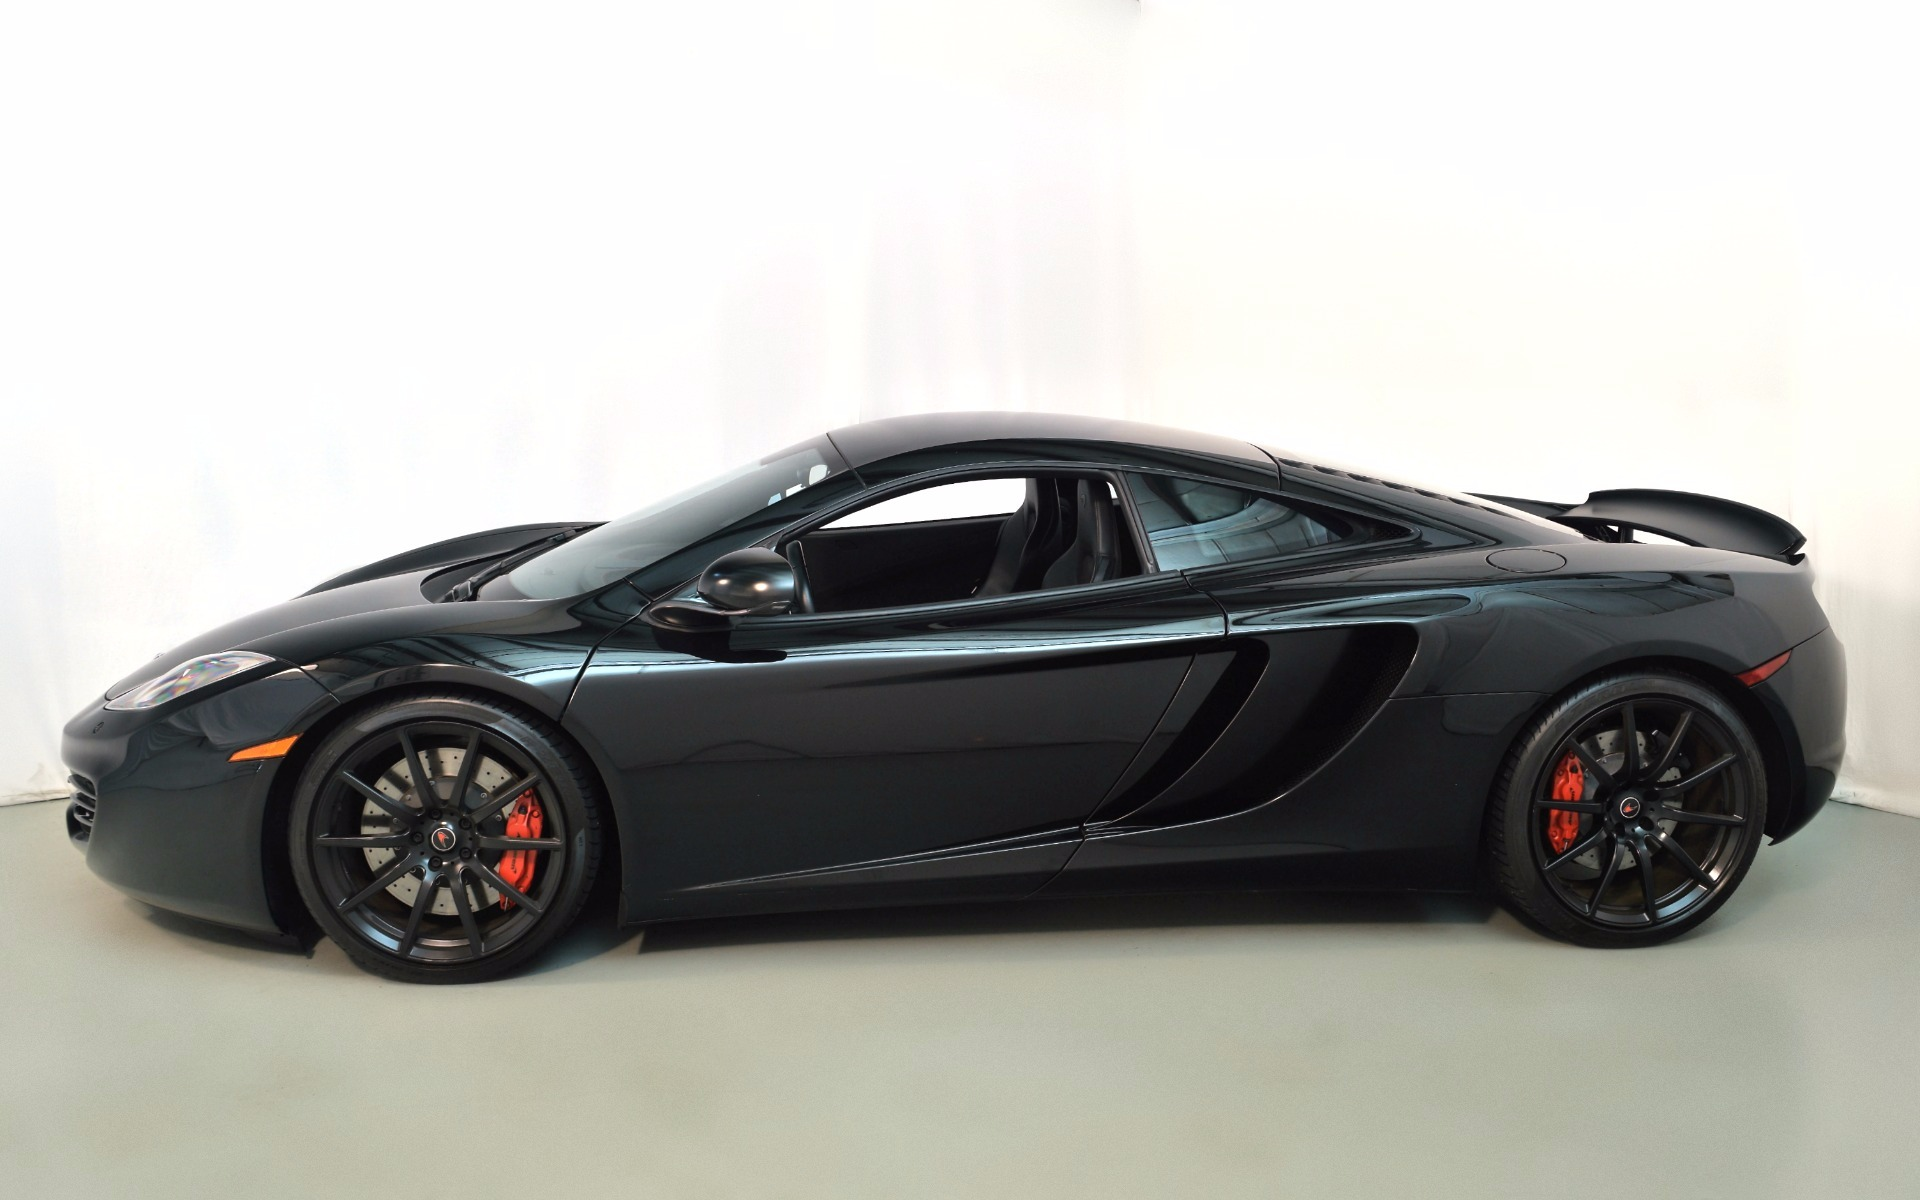 2012 mclaren mp4 12c for sale in norwell ma 000353 mclaren boston. Black Bedroom Furniture Sets. Home Design Ideas